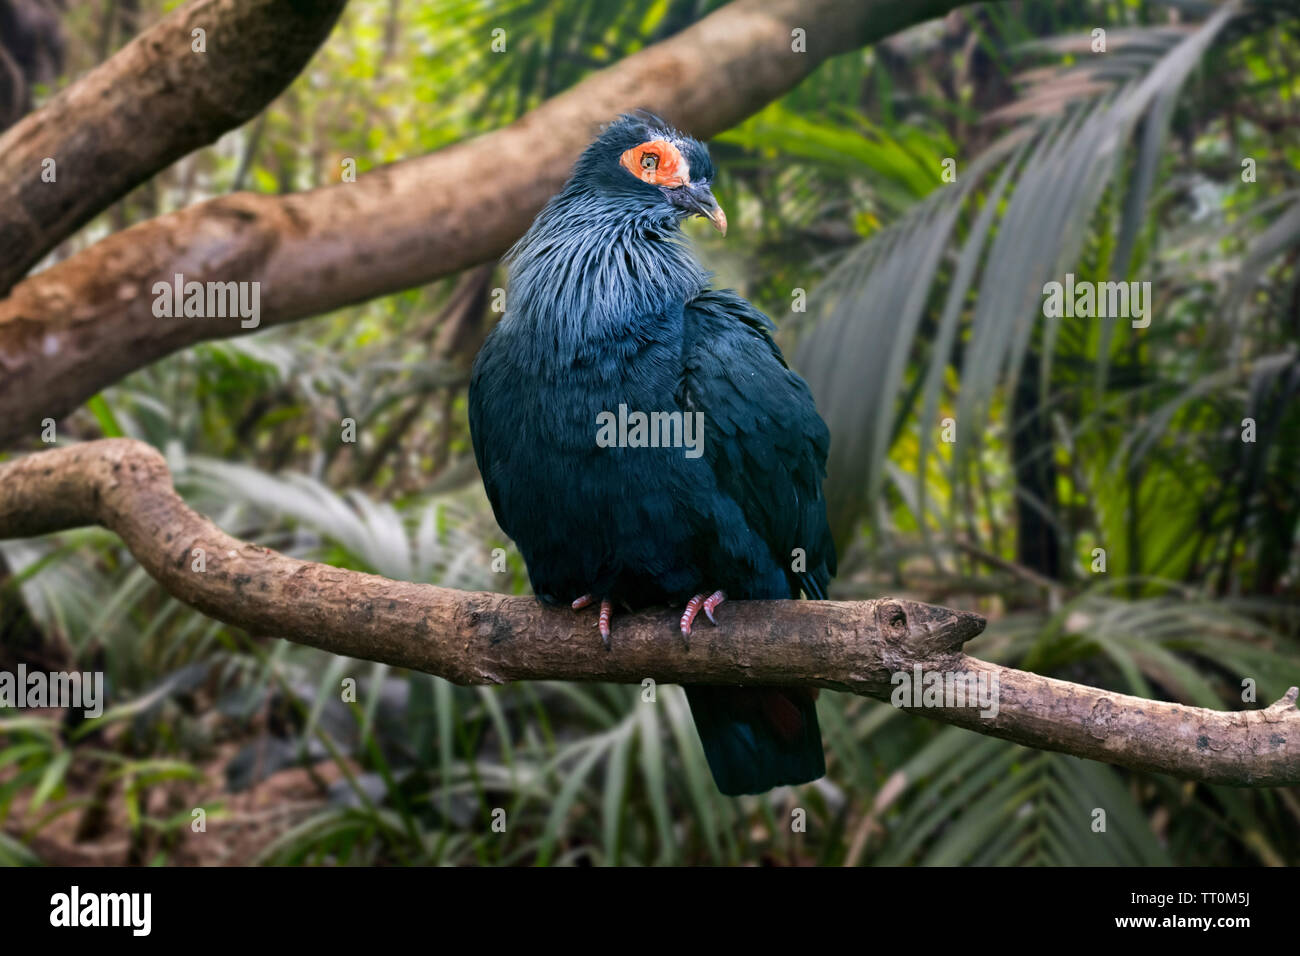 Madagascan blue pigeon / Madagascar blue-pigeon (Alectroenas madagascariensis) perched in tree, native to northern and eastern Madagascar, Africa - Stock Image